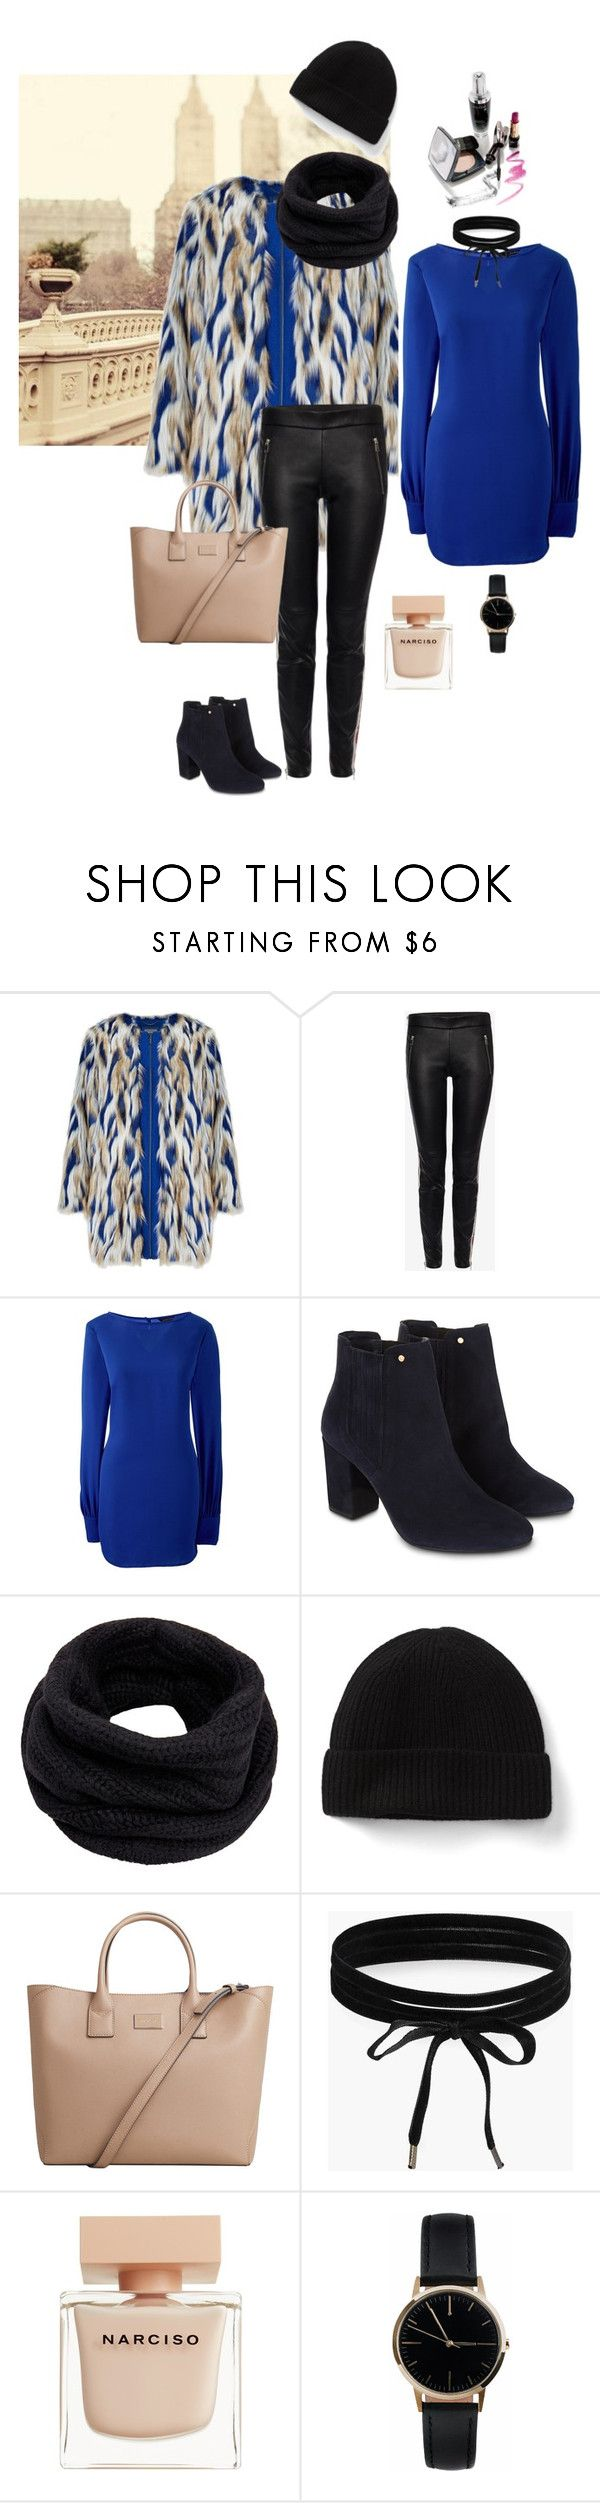 """""""Royal blue"""" by ulusia-1 ❤ liked on Polyvore featuring Alexander McQueen, Lands' End, Monsoon, Helmut Lang, MANGO, Boohoo, Narciso Rodriguez and Freedom To Exist"""